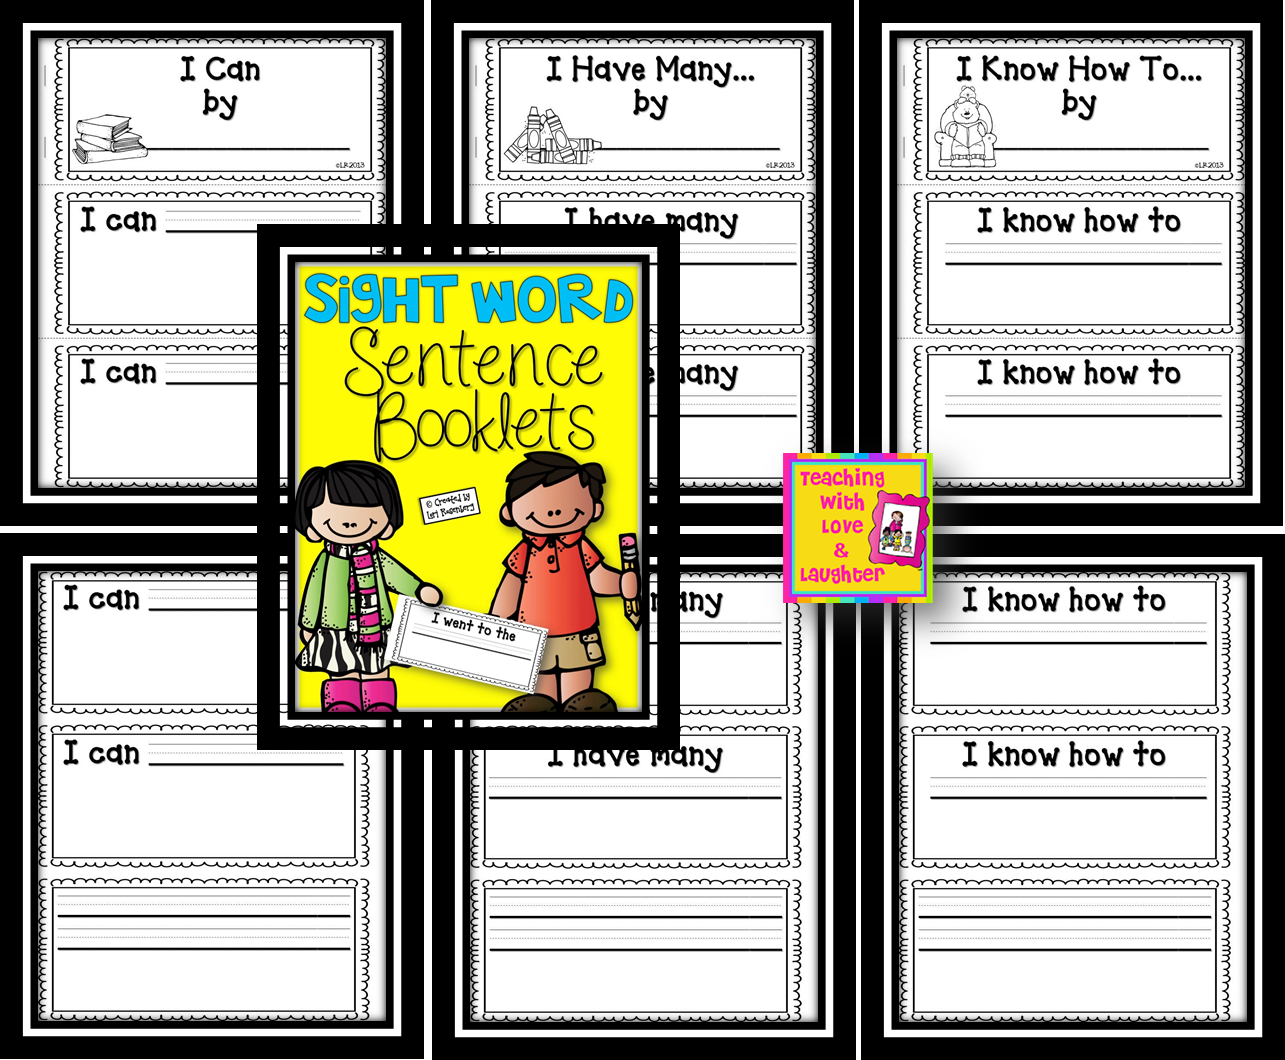 Teaching With Love And Laughter Sight Word Cvc Word Sentence Booklets